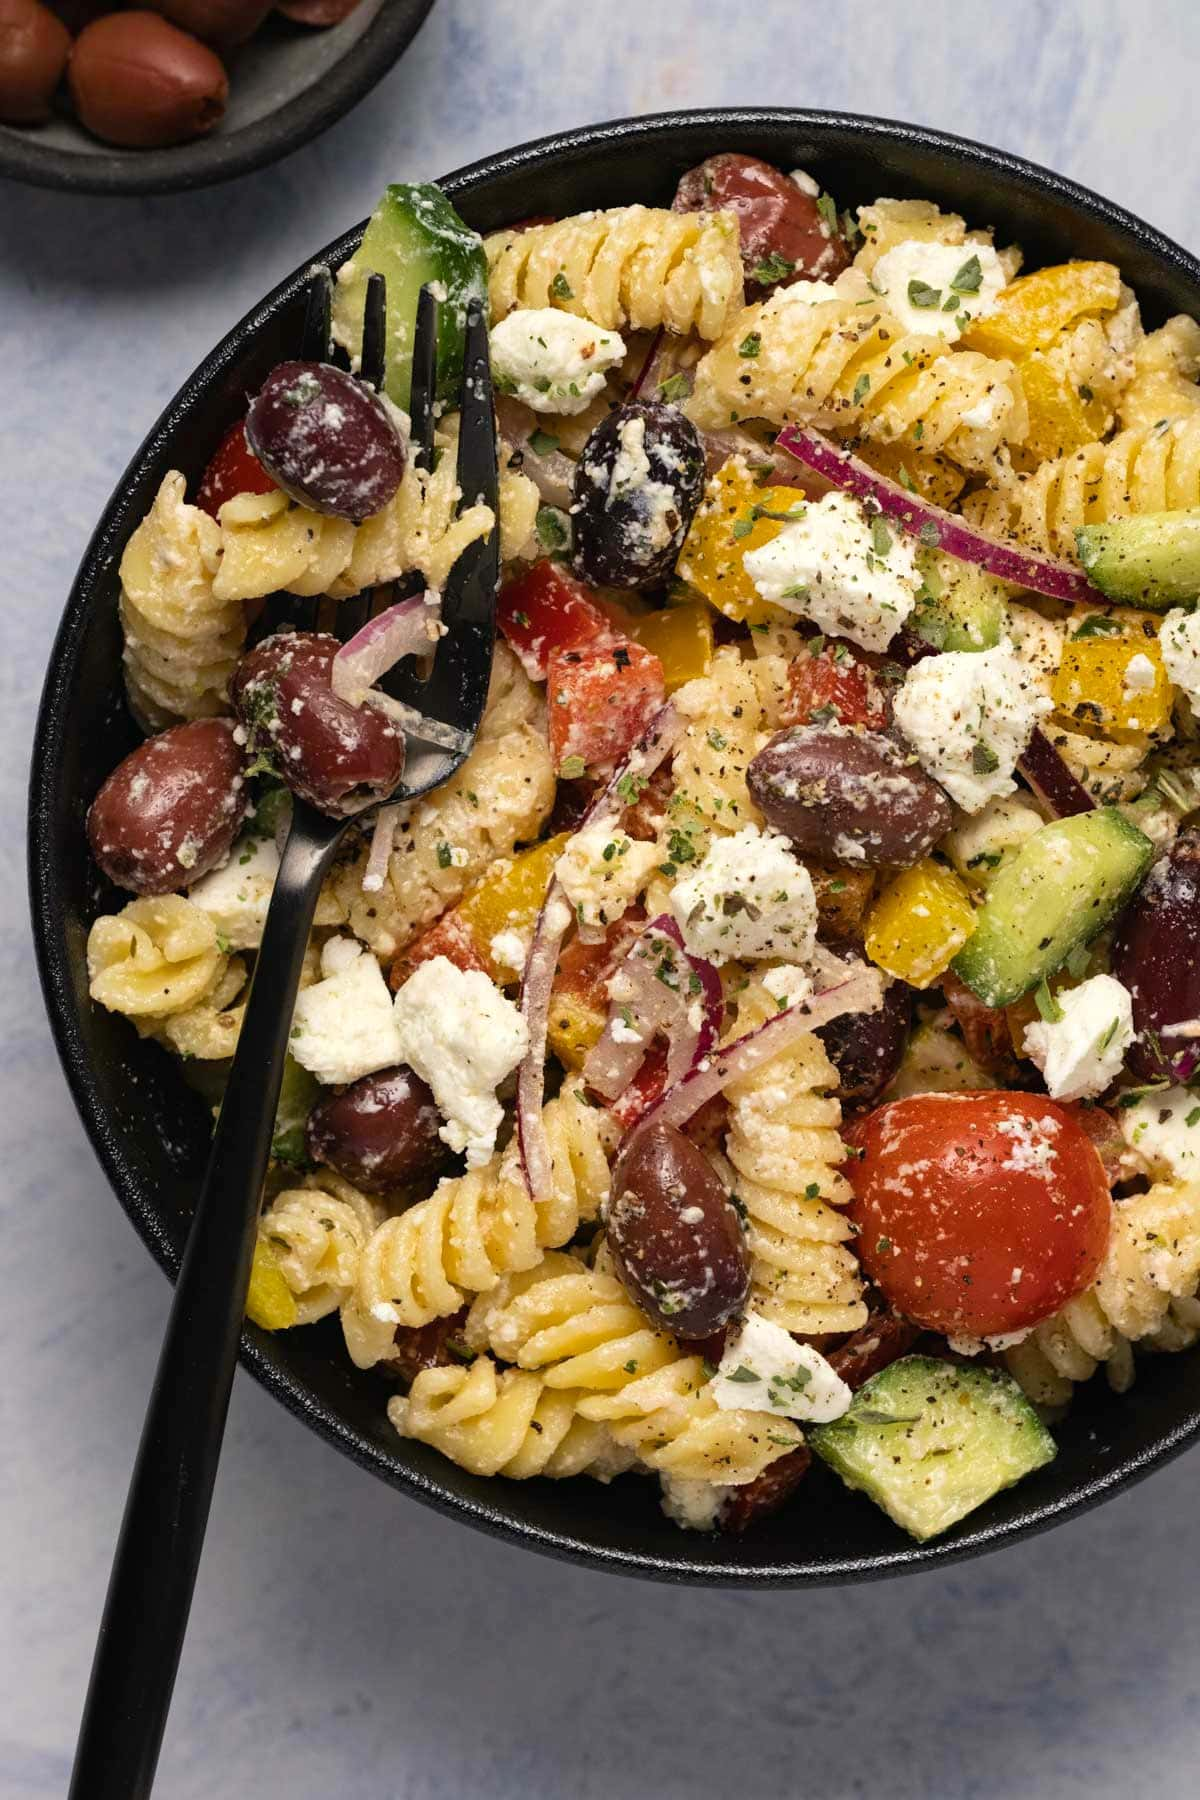 Greek pasta salad in a black bowl with a fork.